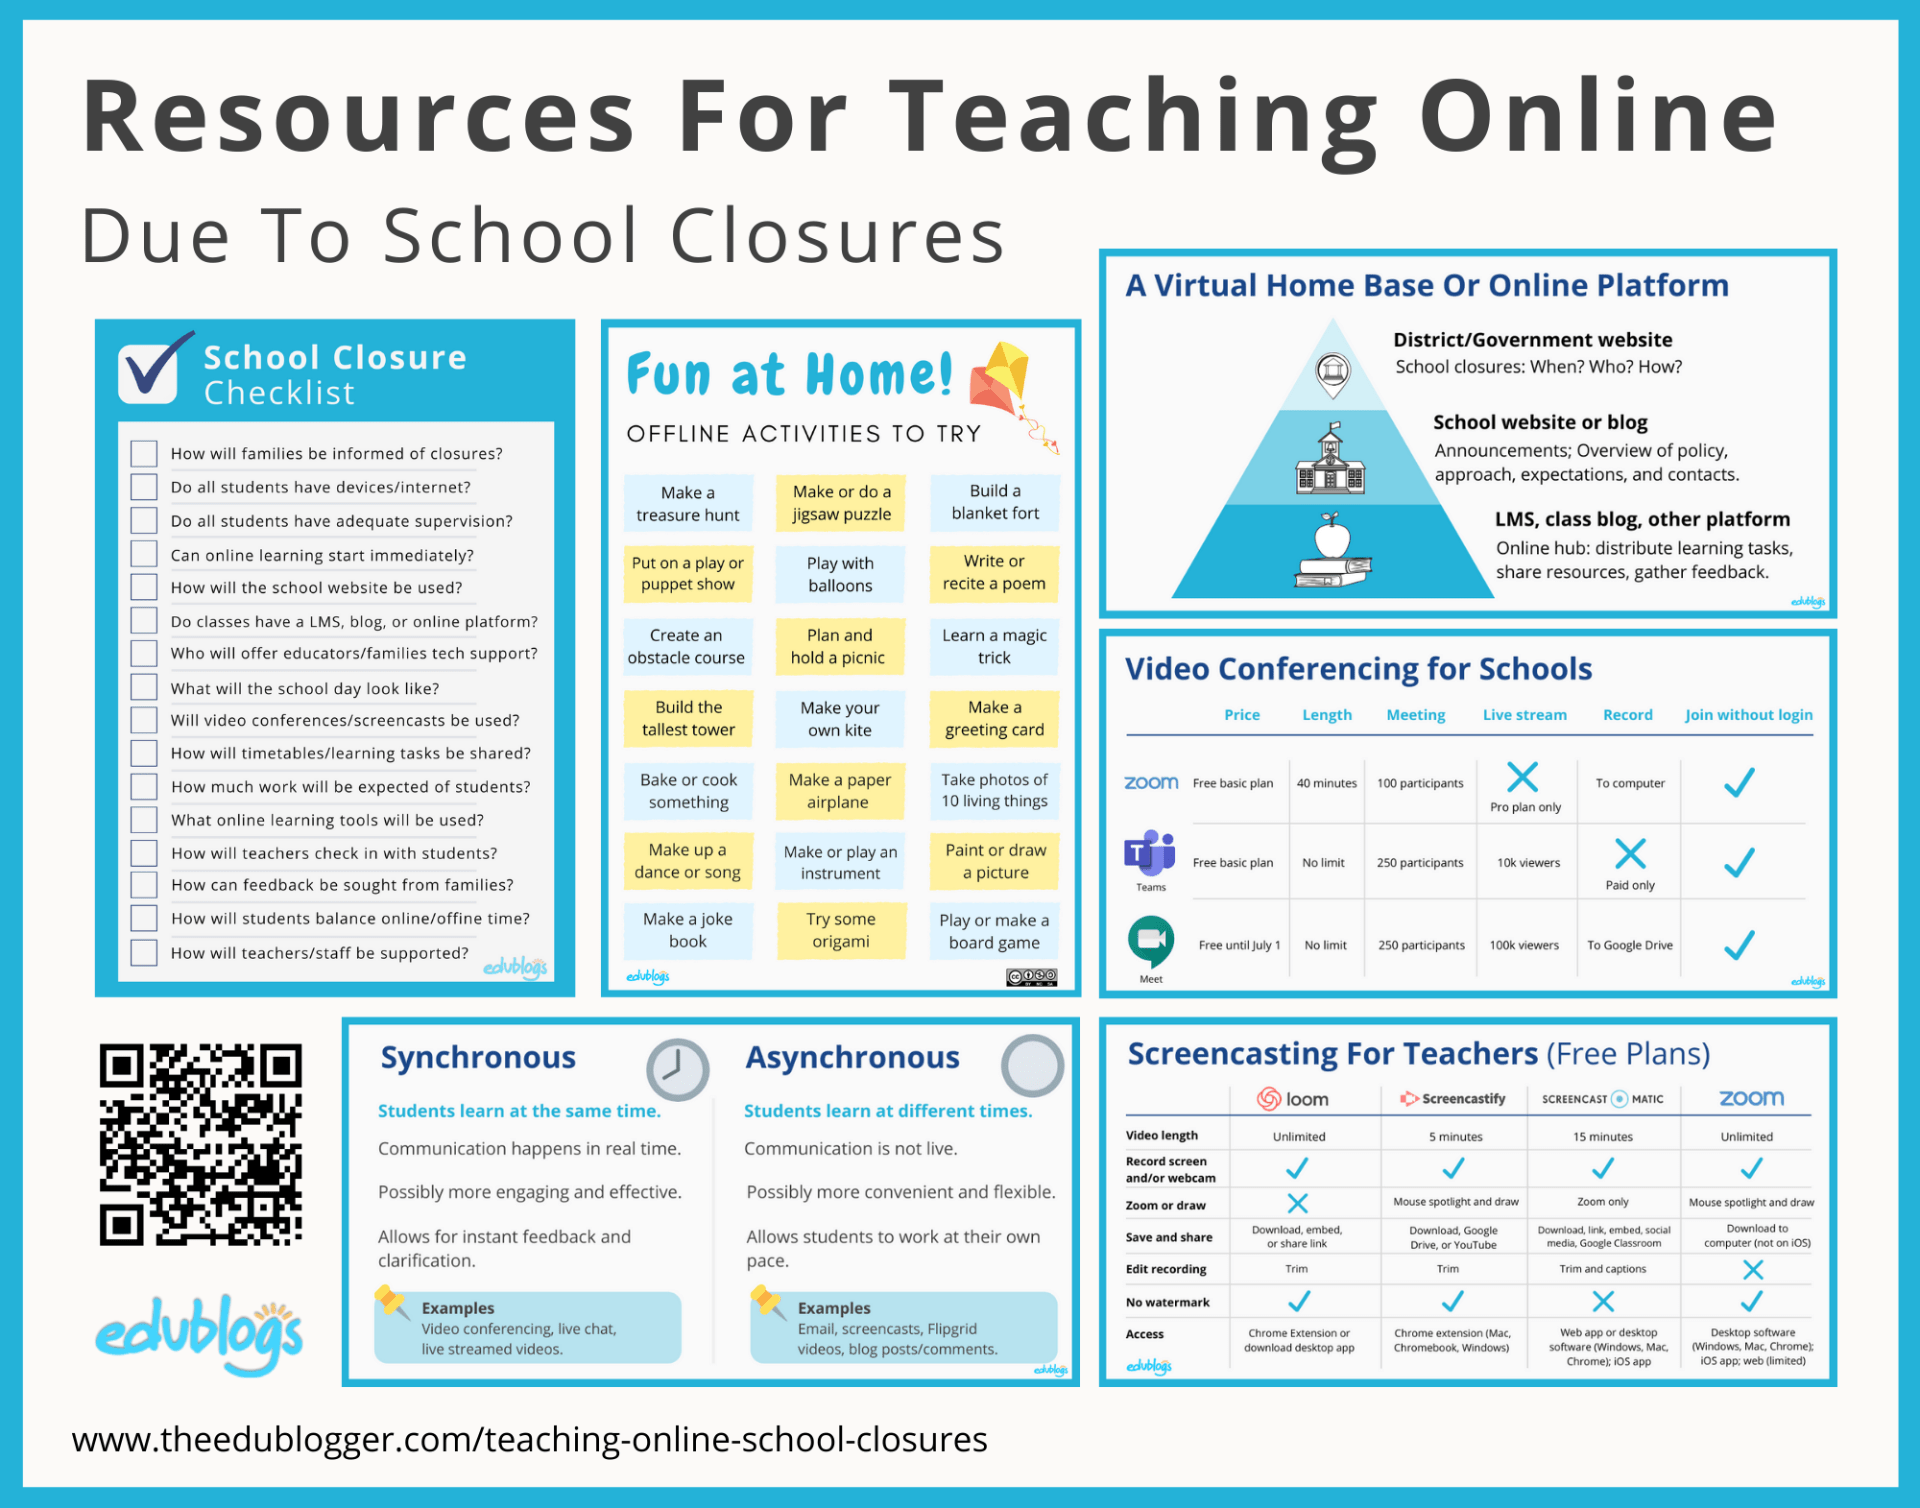 Resources For Teaching Online Due To School Closures The Edublogger